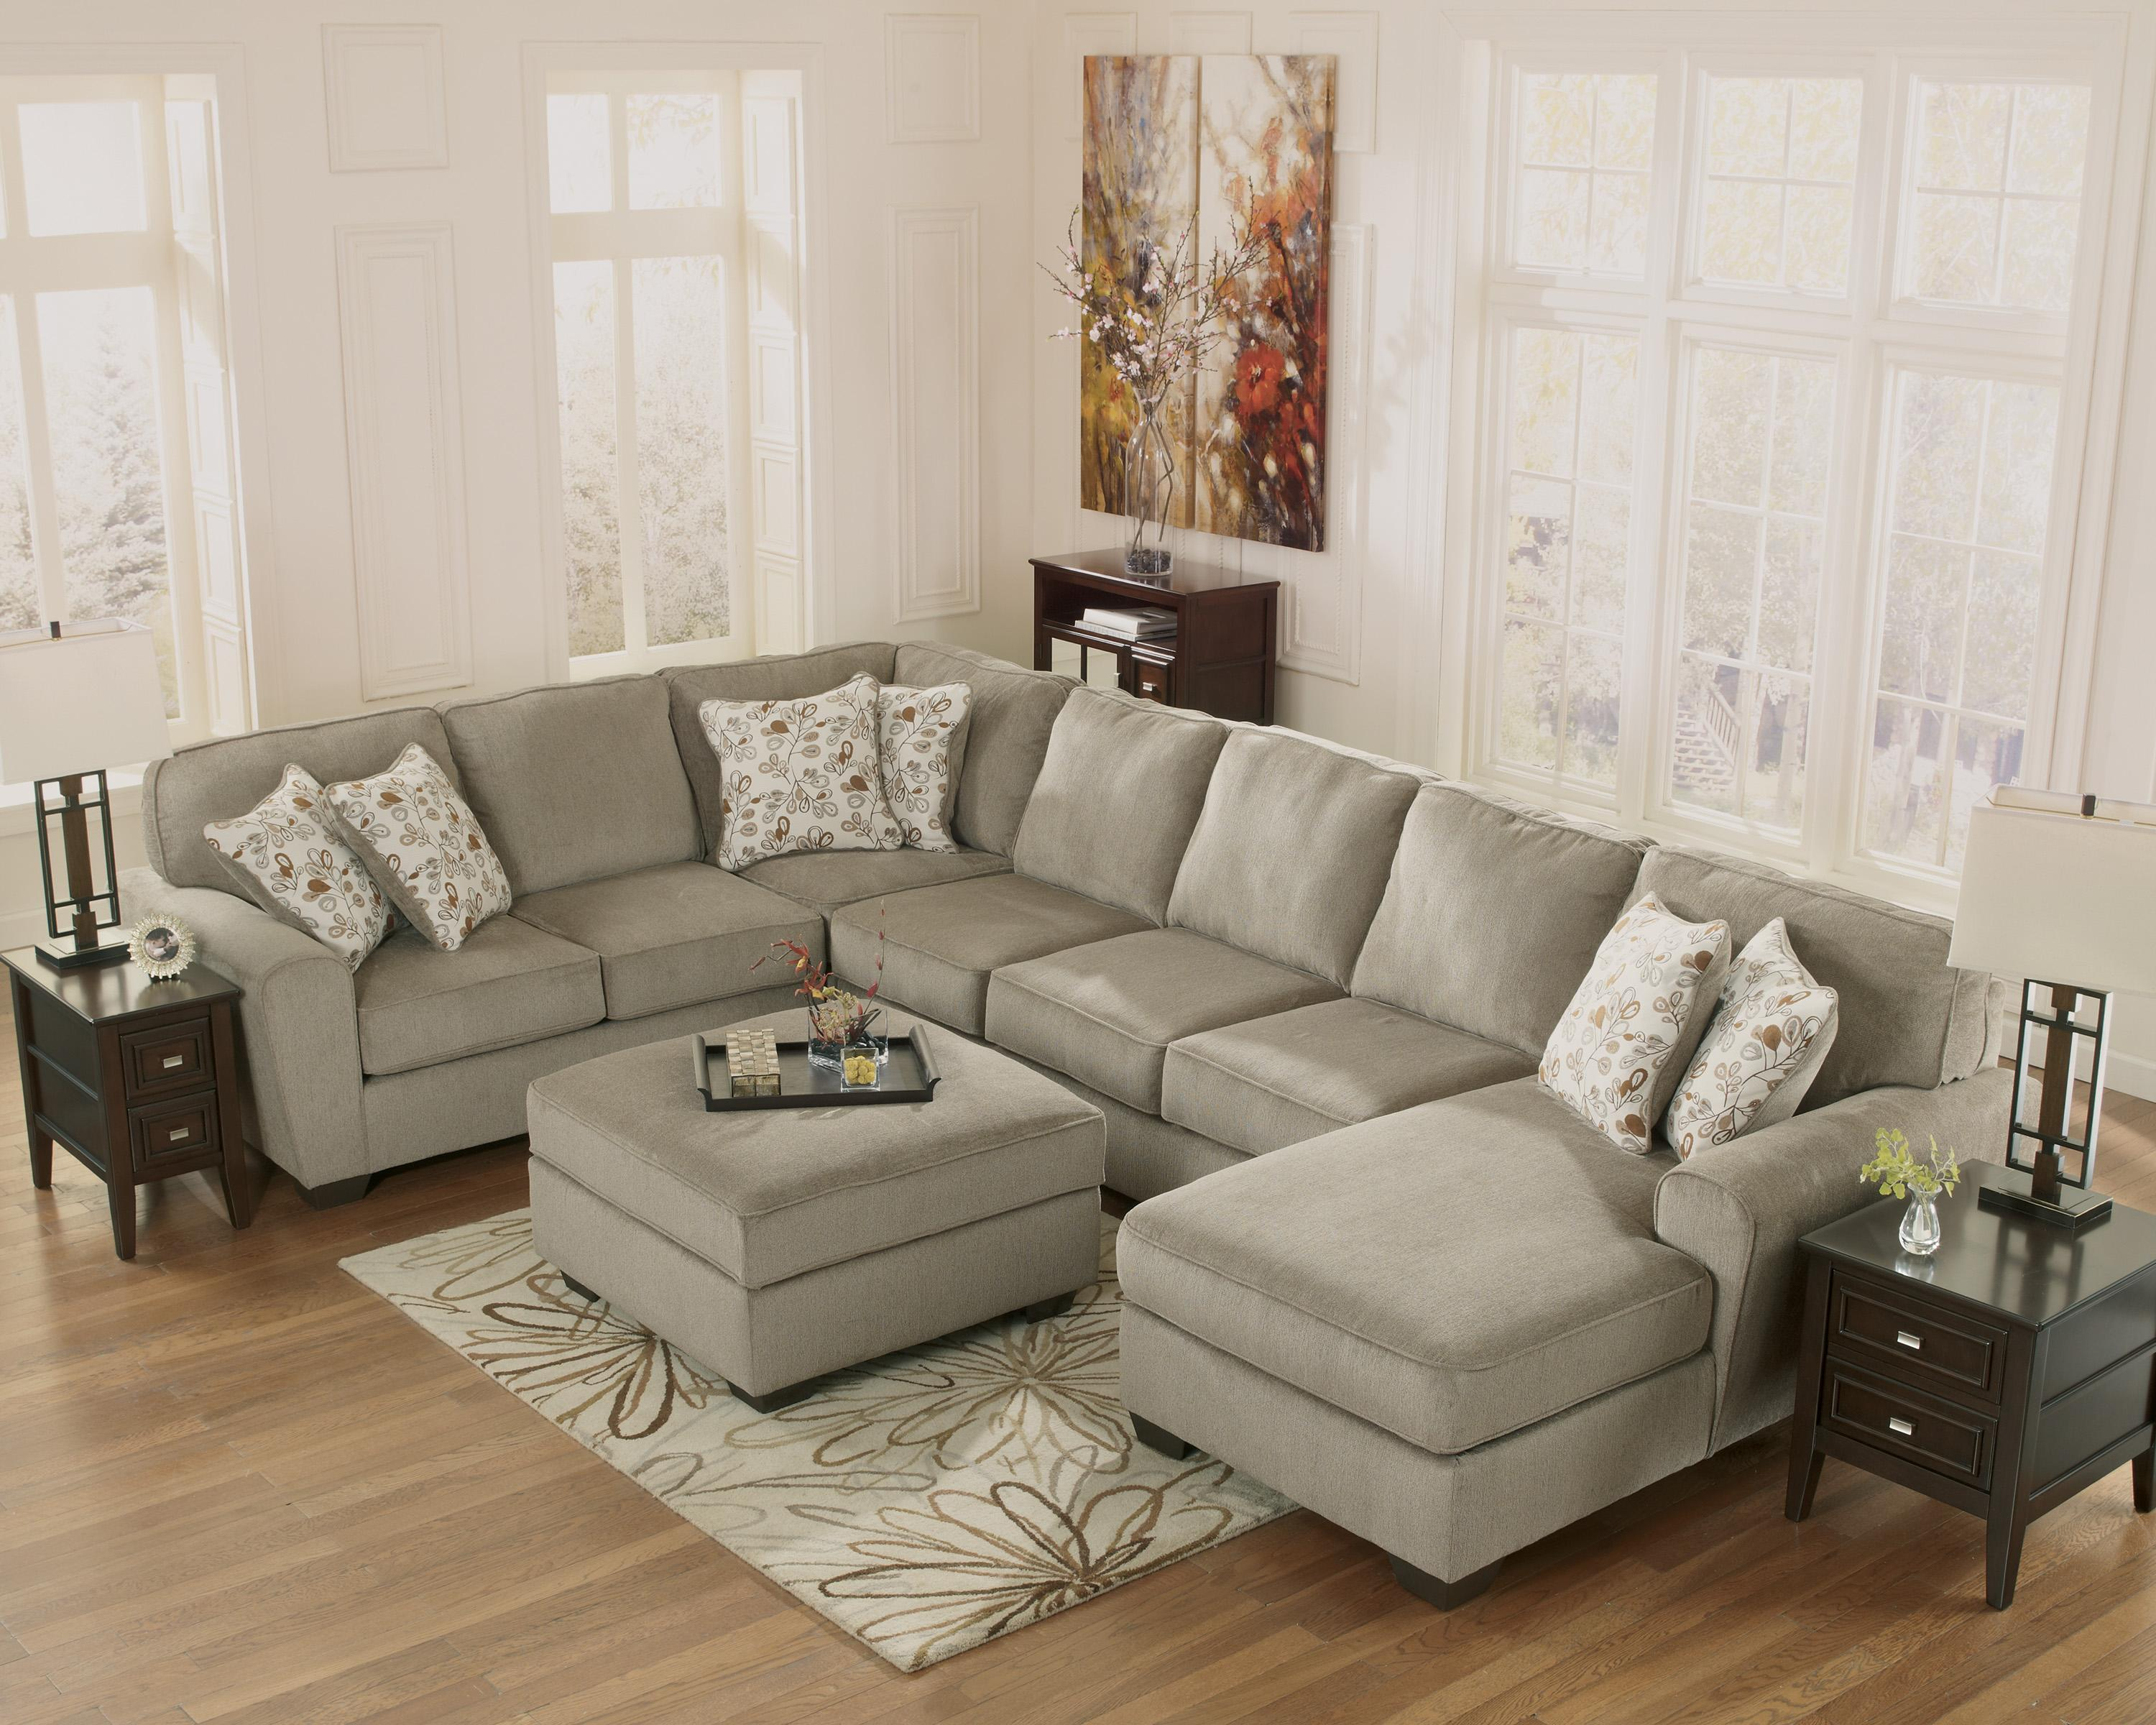 Ashley Furniture Patola Park Patina 4 Piece Sectional With Right Chaise Fashion Furniture